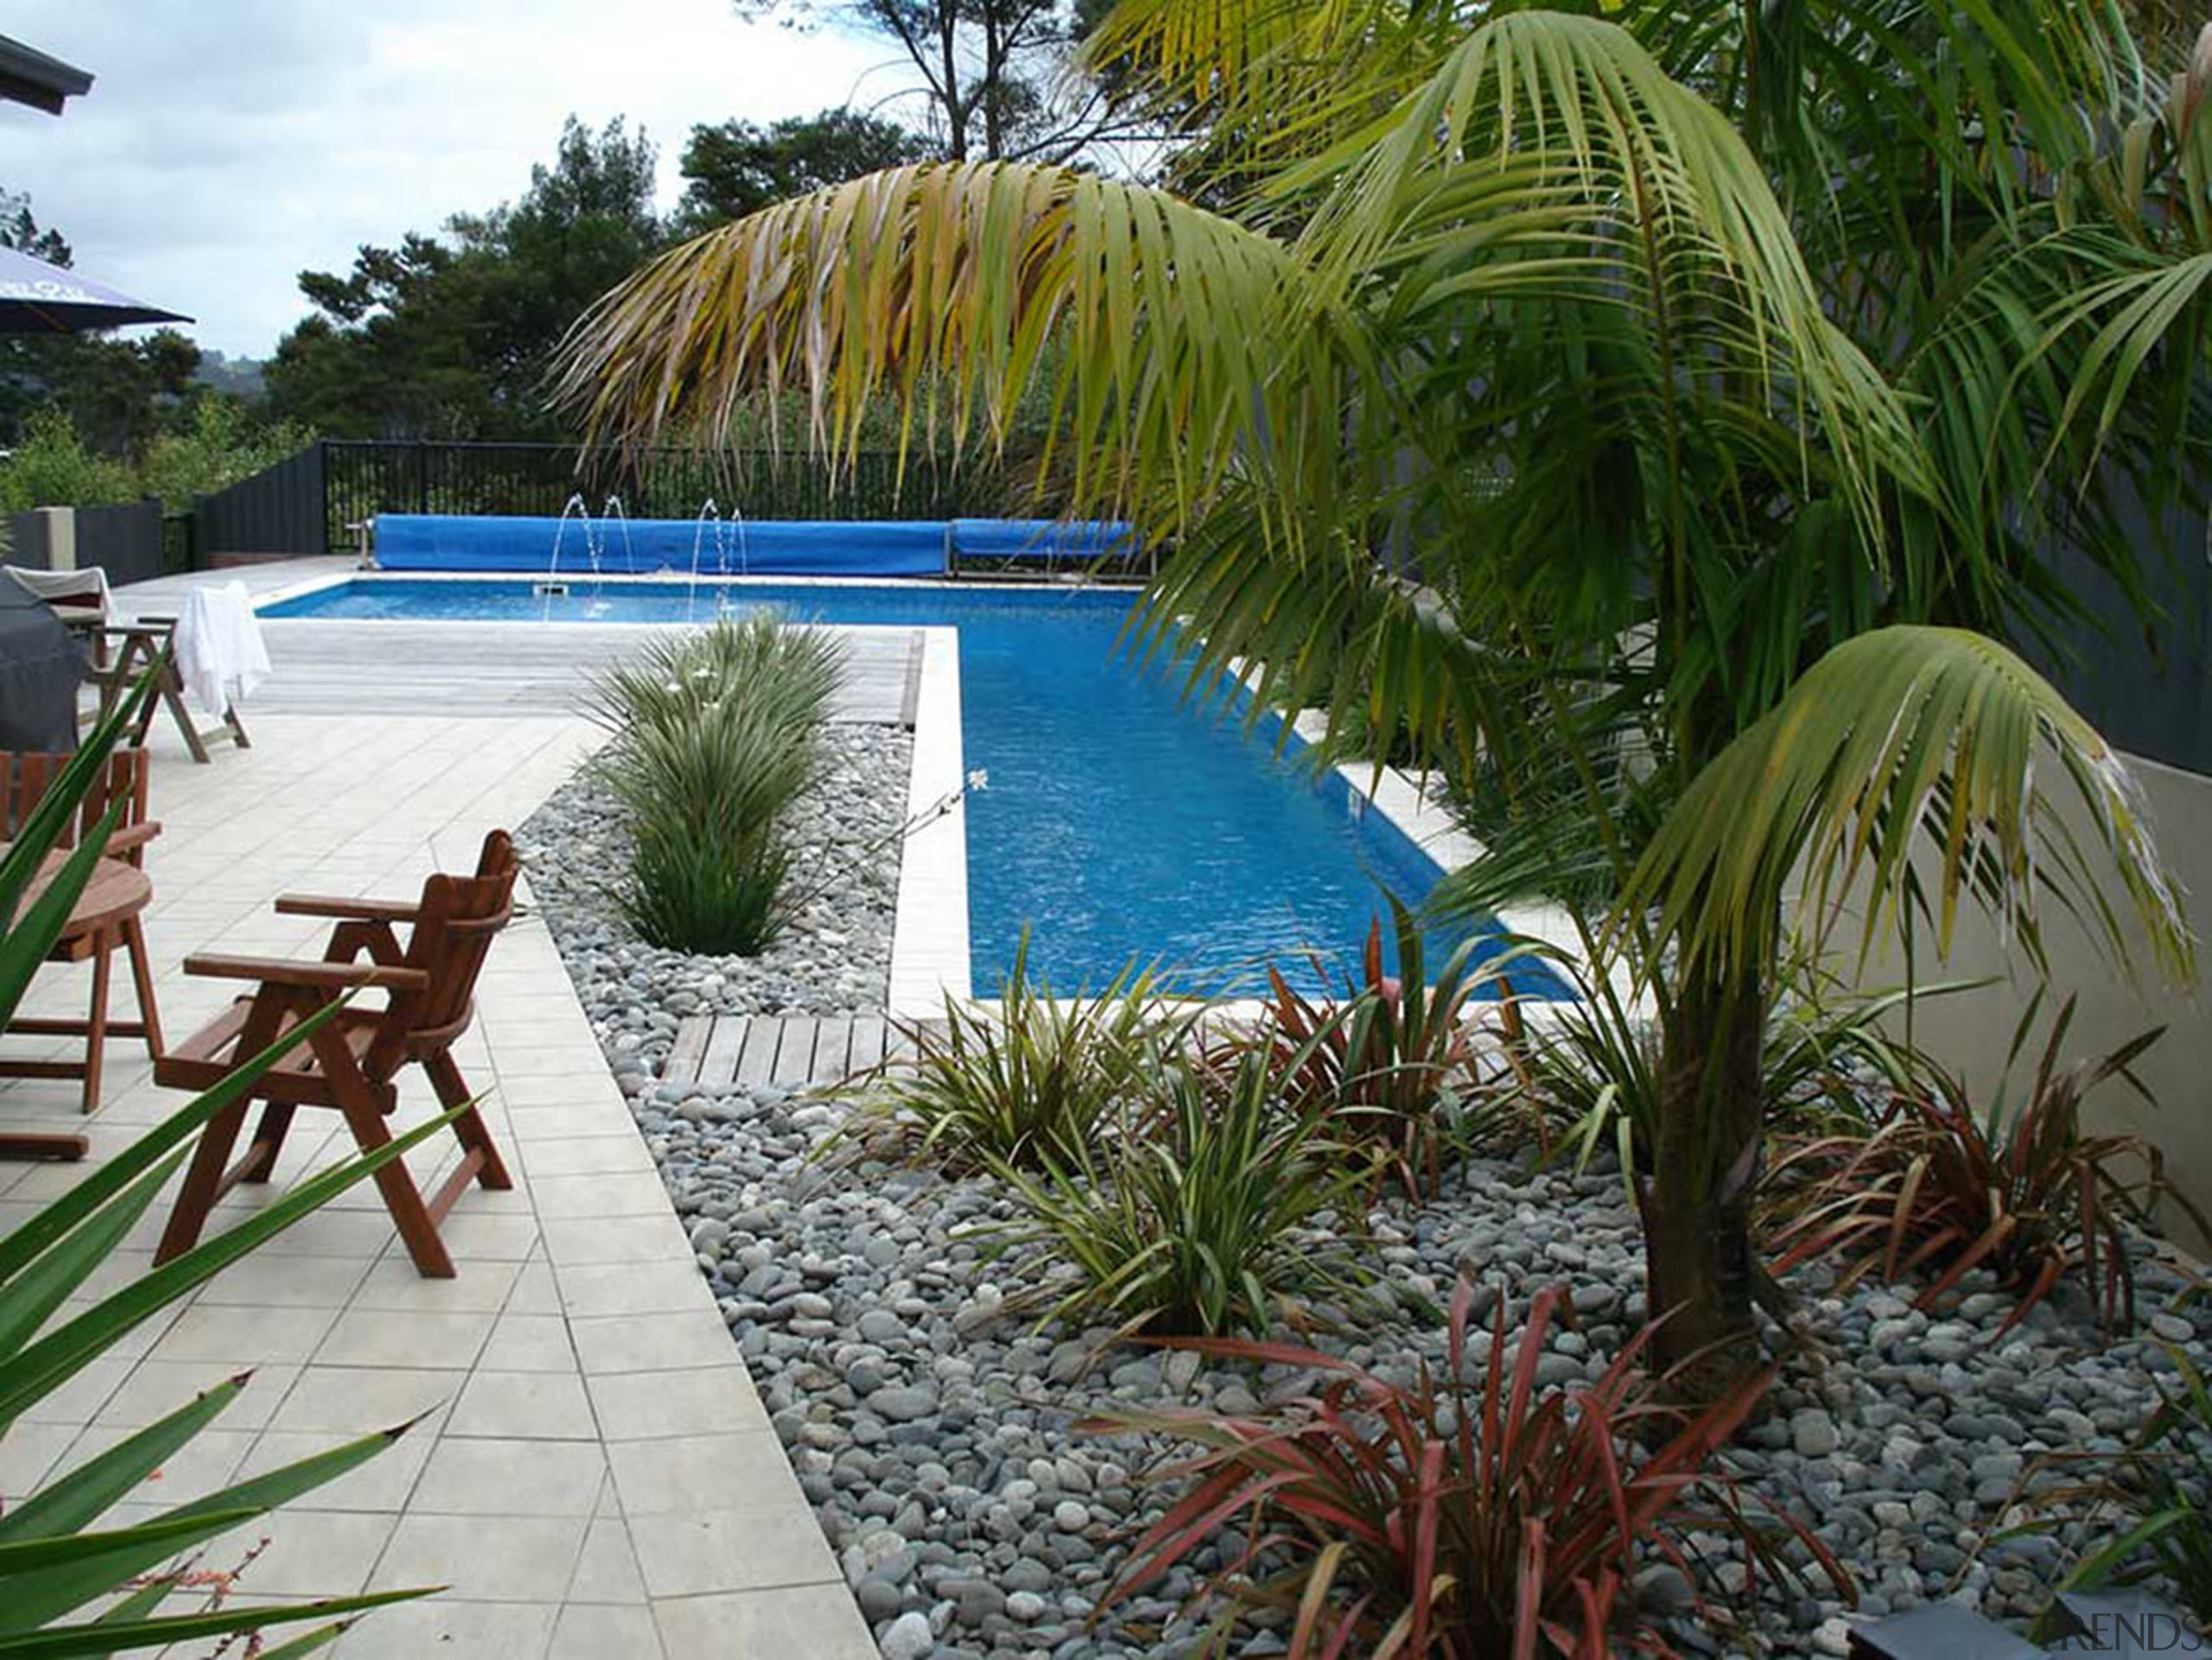 Cascades highly durable Aqualux 770 interiors last over arecales, leisure, palm tree, plant, property, real estate, resort, swimming pool, tree, tropics, brown